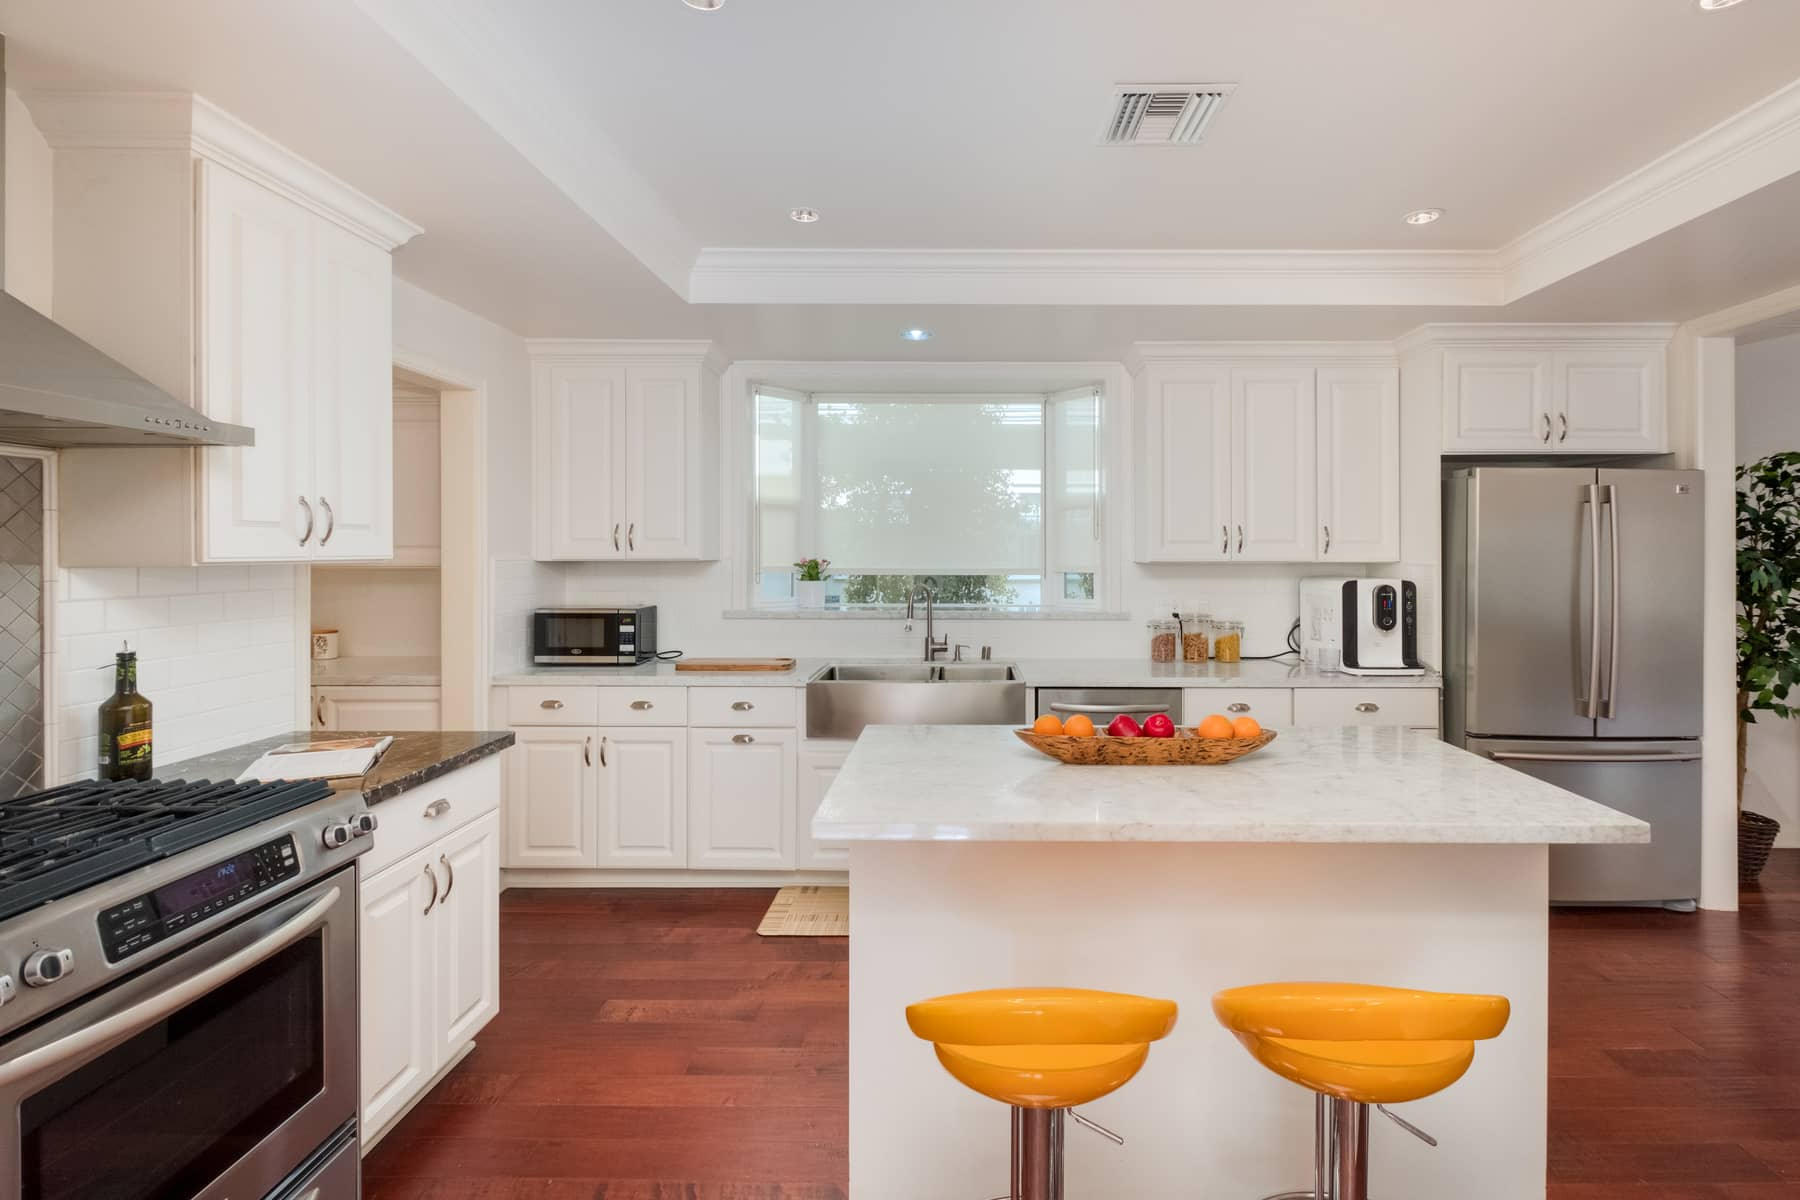 I said 21st century amenities, didn't I? Check out the kitchen. Spacious, bright, new, stainless steel, center island. It has it all.